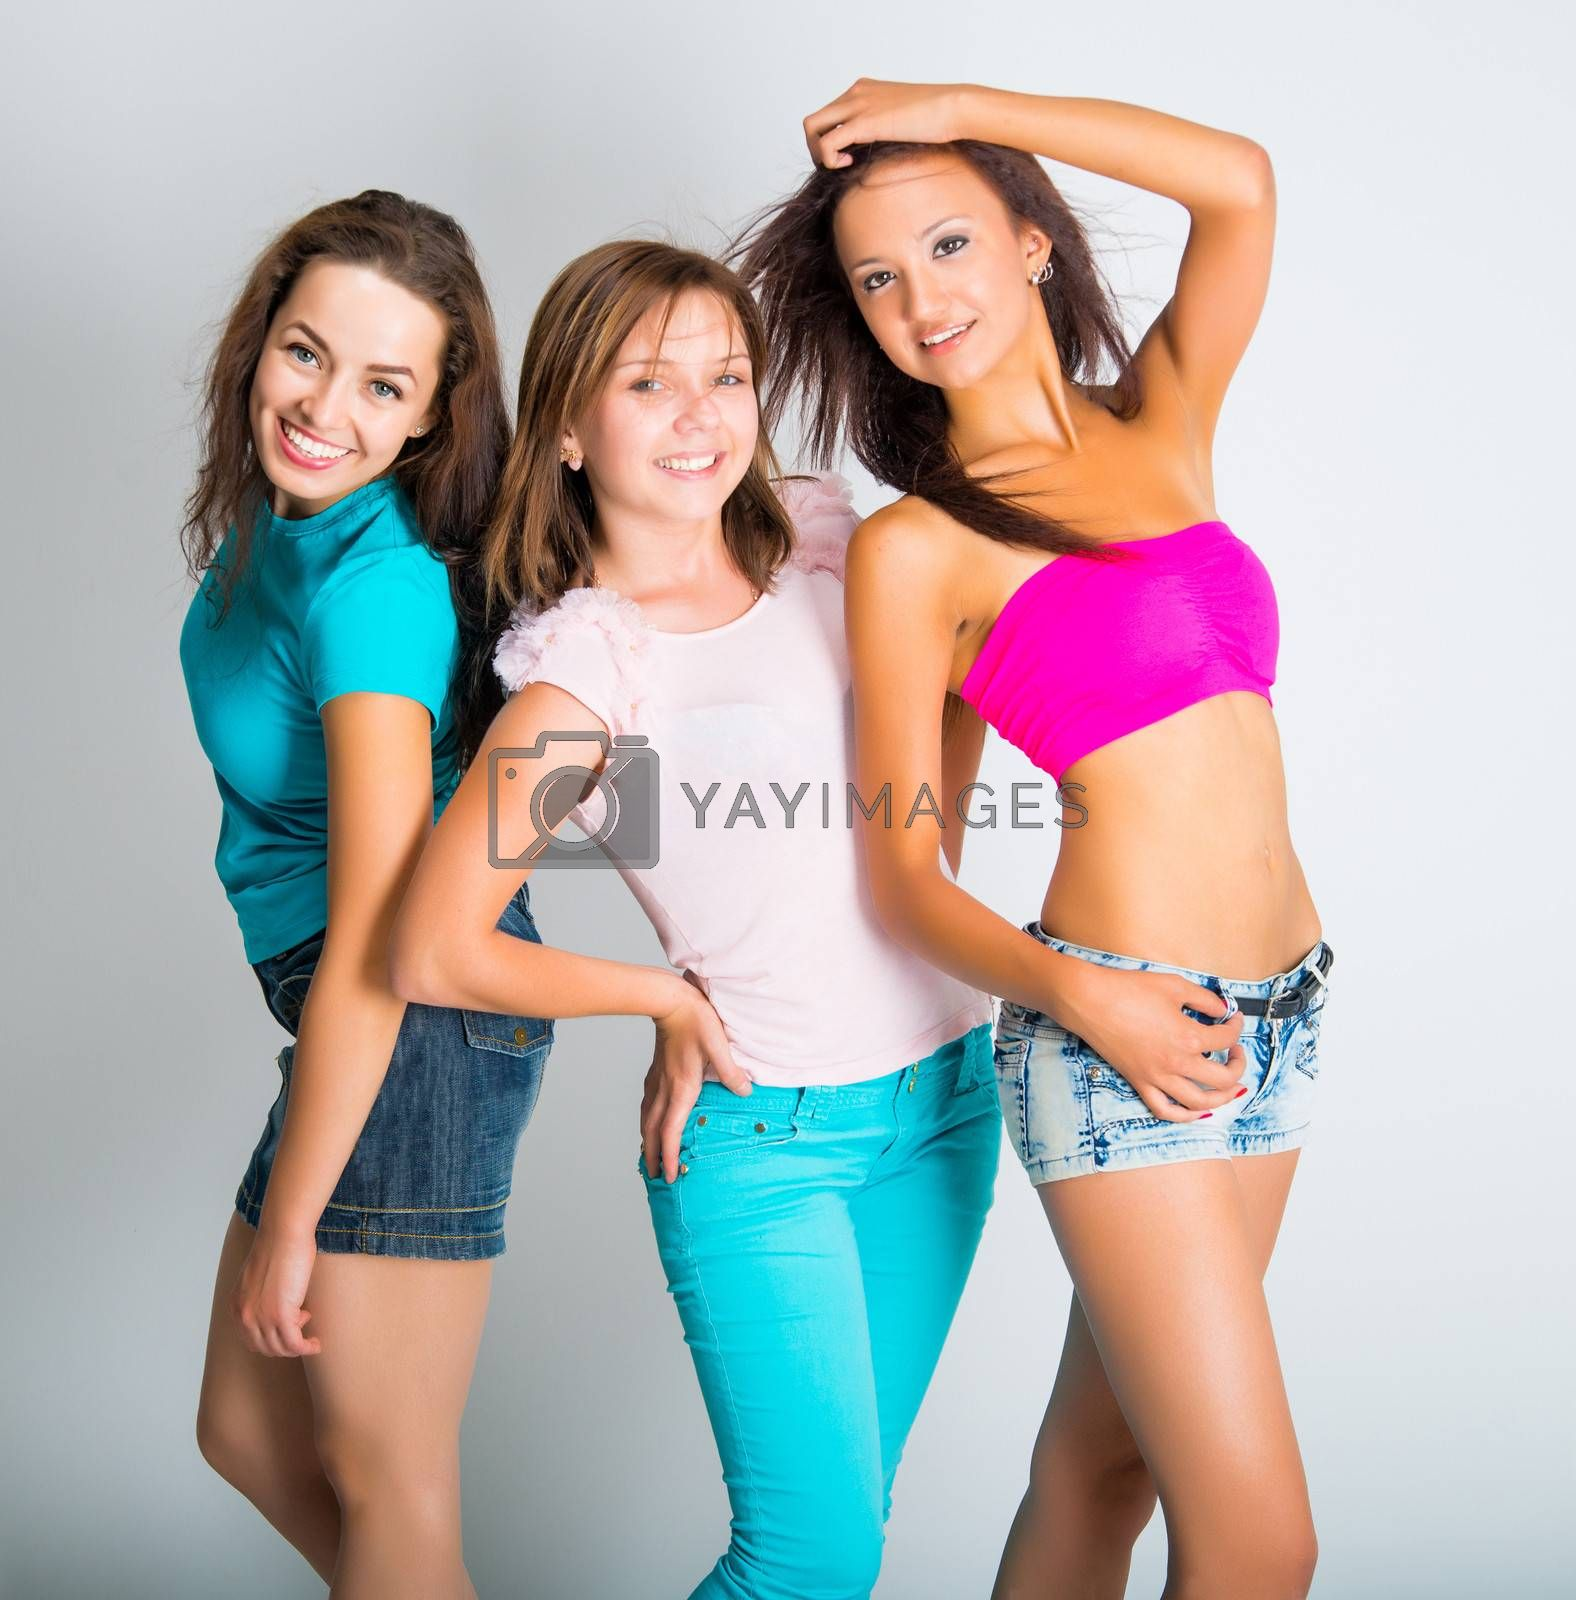 three teenage girls smiling on light background